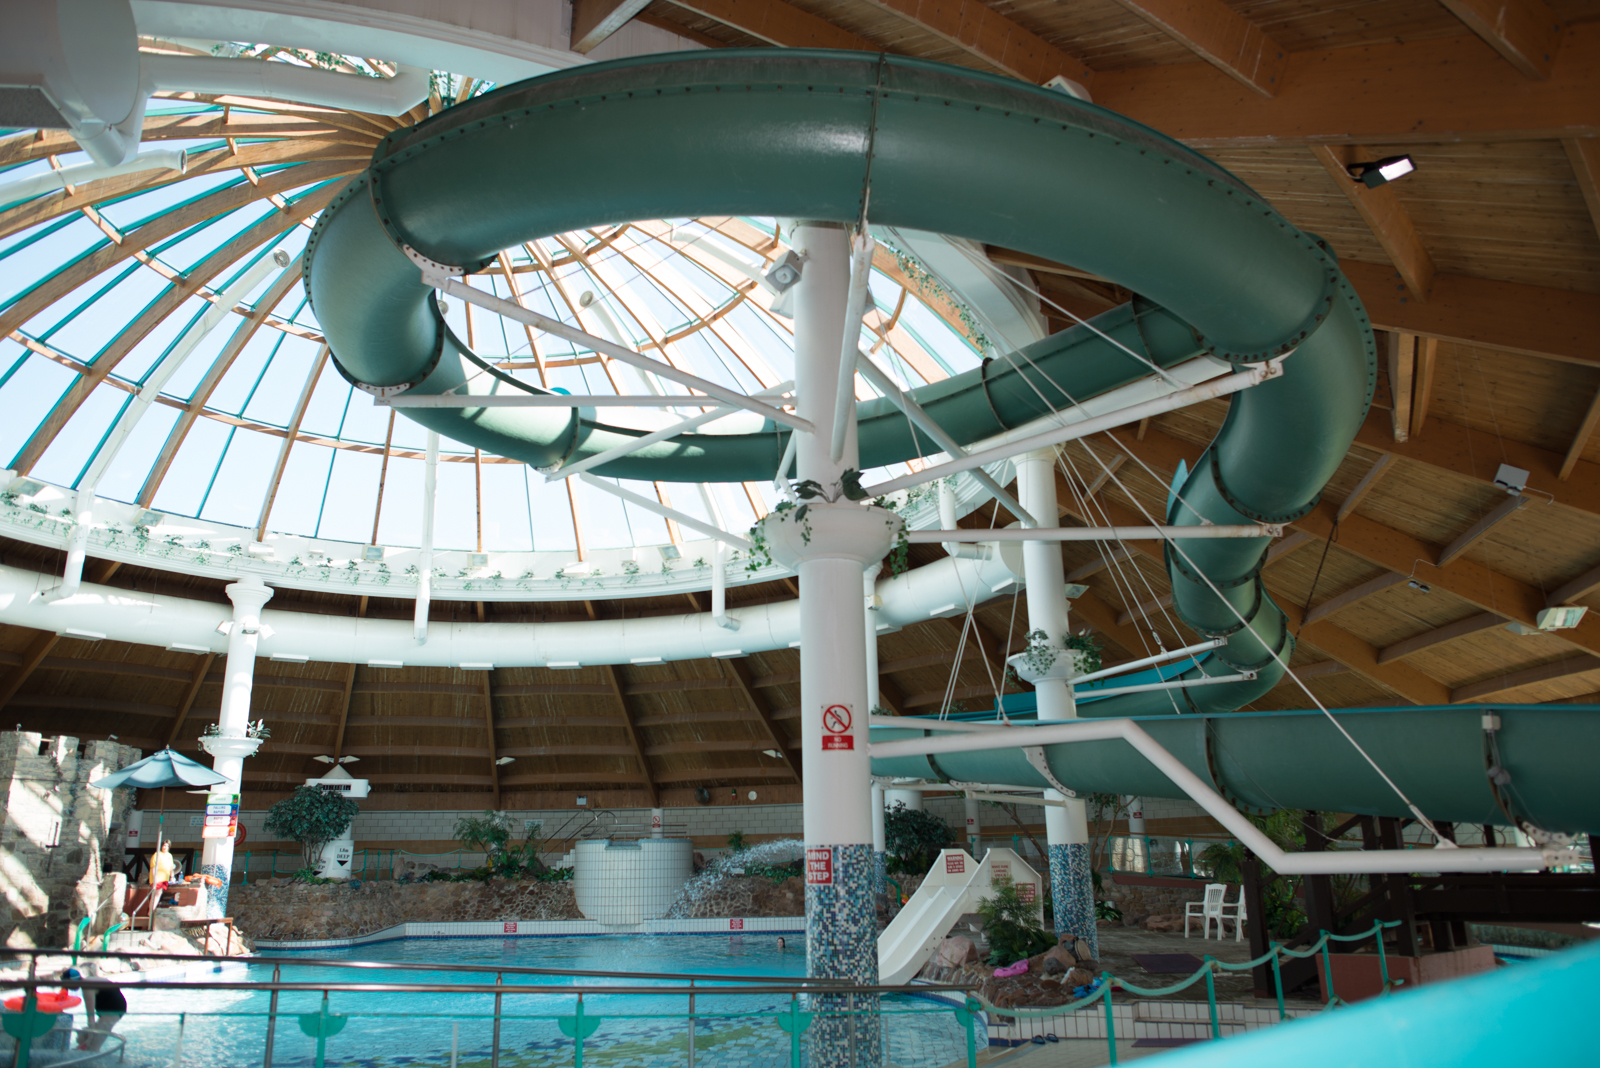 Fantastic march membership offer aqua dome tralee for Tralee swimming pool timetable